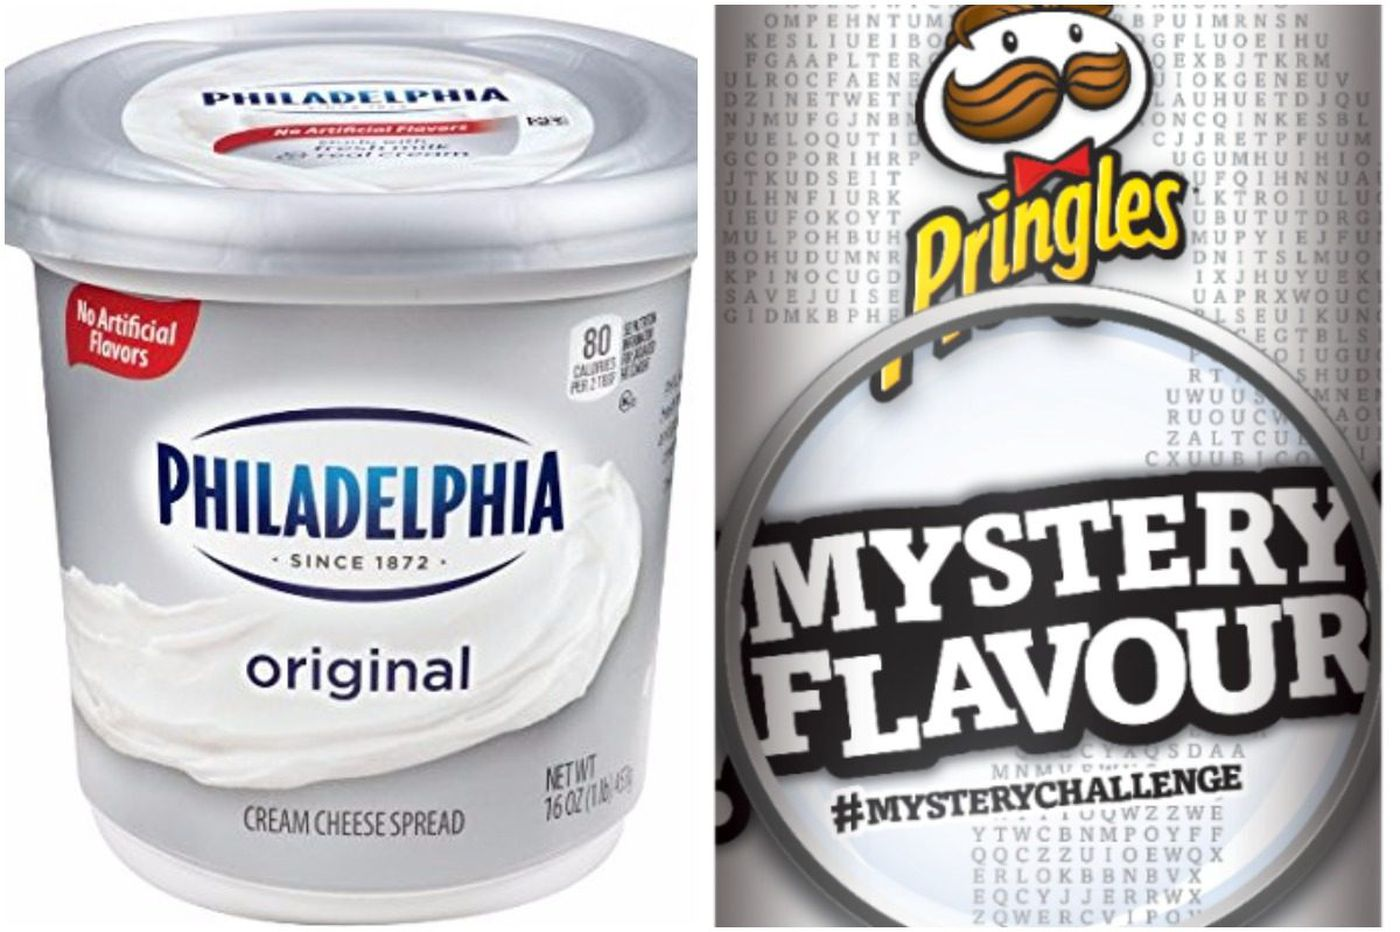 When Philly branding goes wrong: Cream cheese shoes and cheesesteak chips?